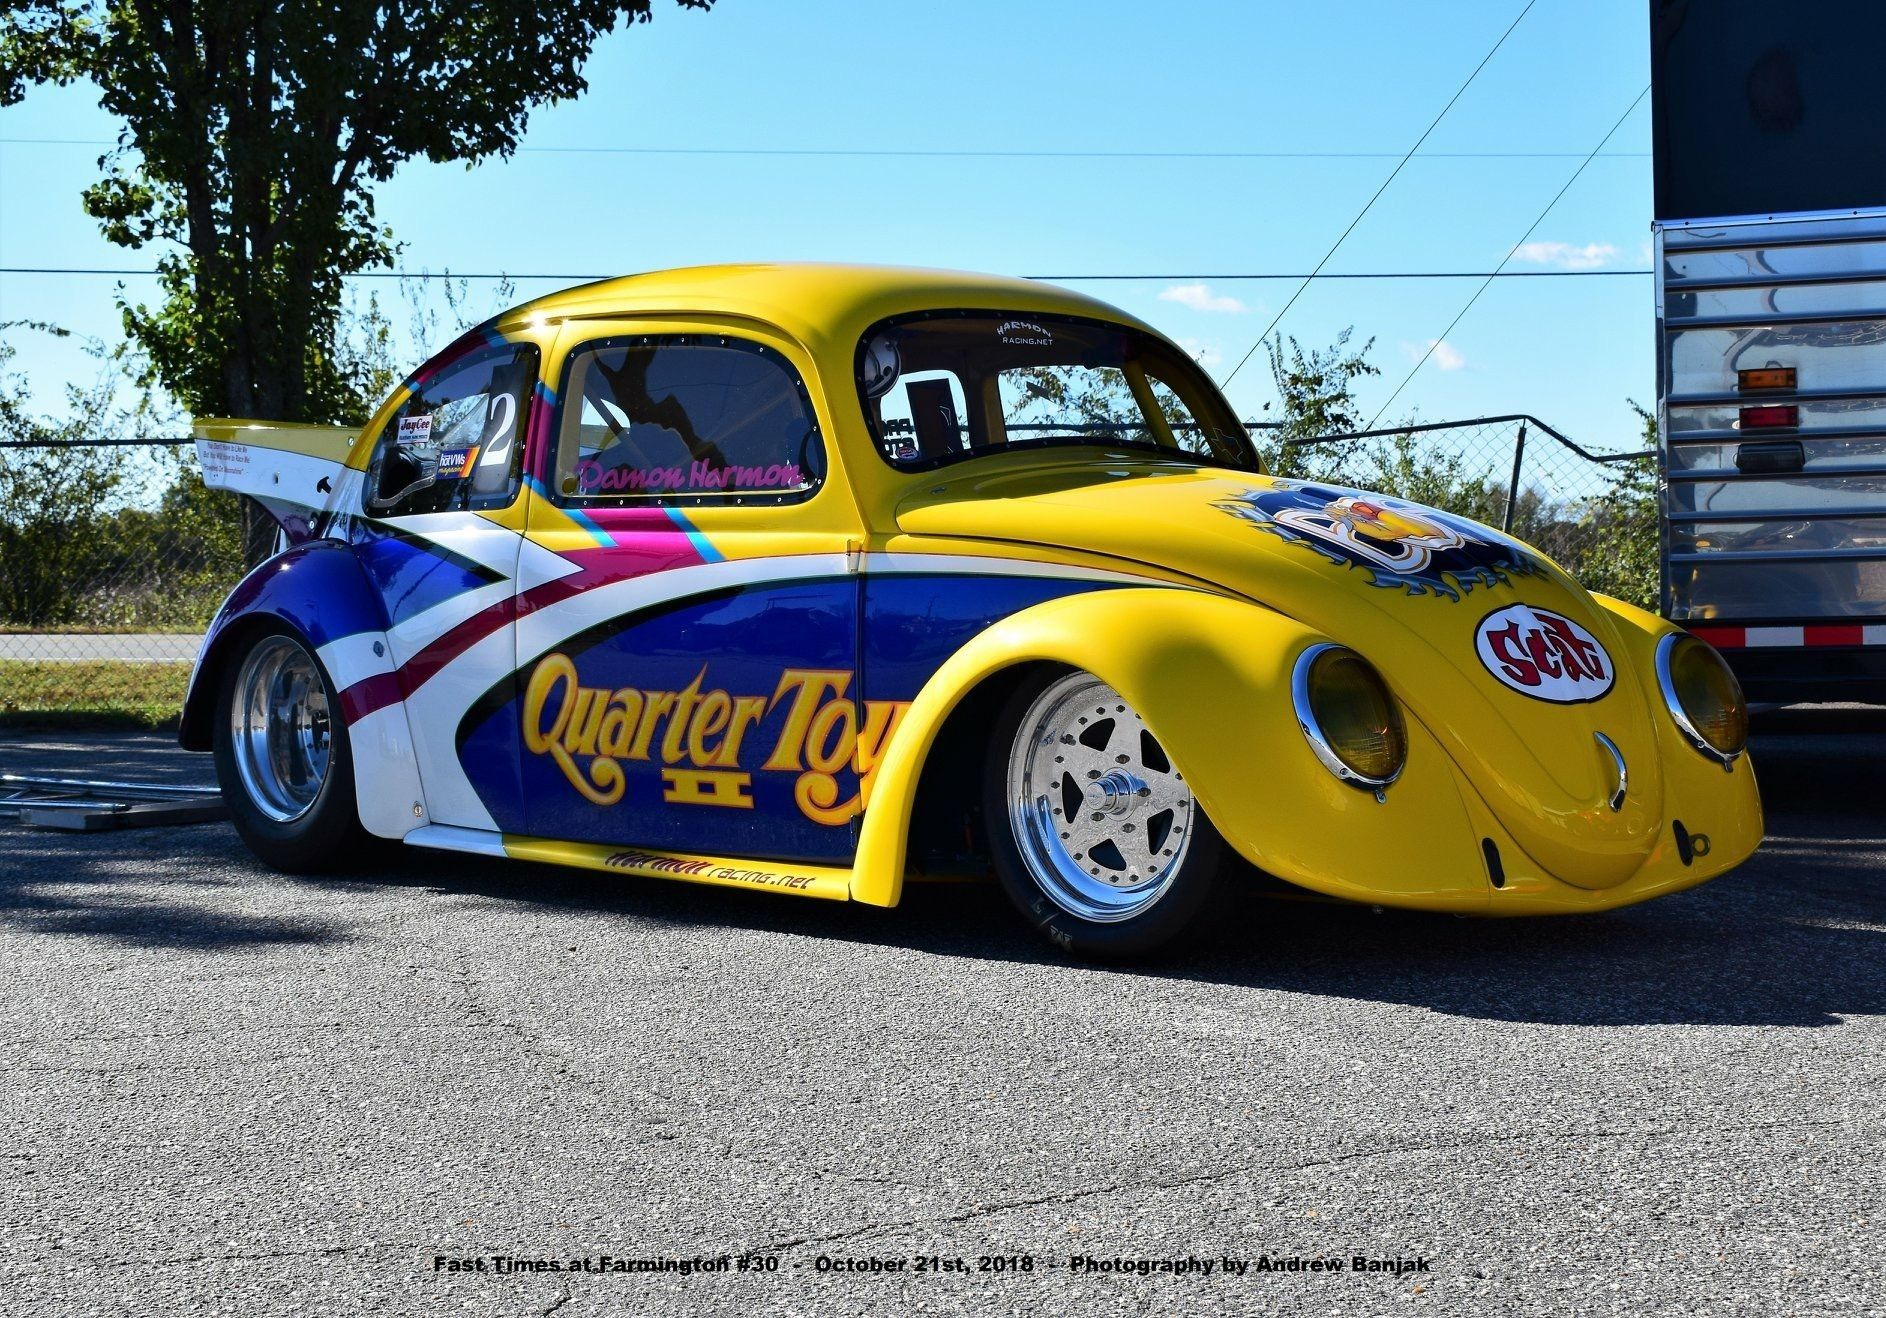 Pin By Alcides Avelino Dos Santos On Nhra Gallary 2 In 2020 Car Volkswagen Vw Aircooled Vw Bug